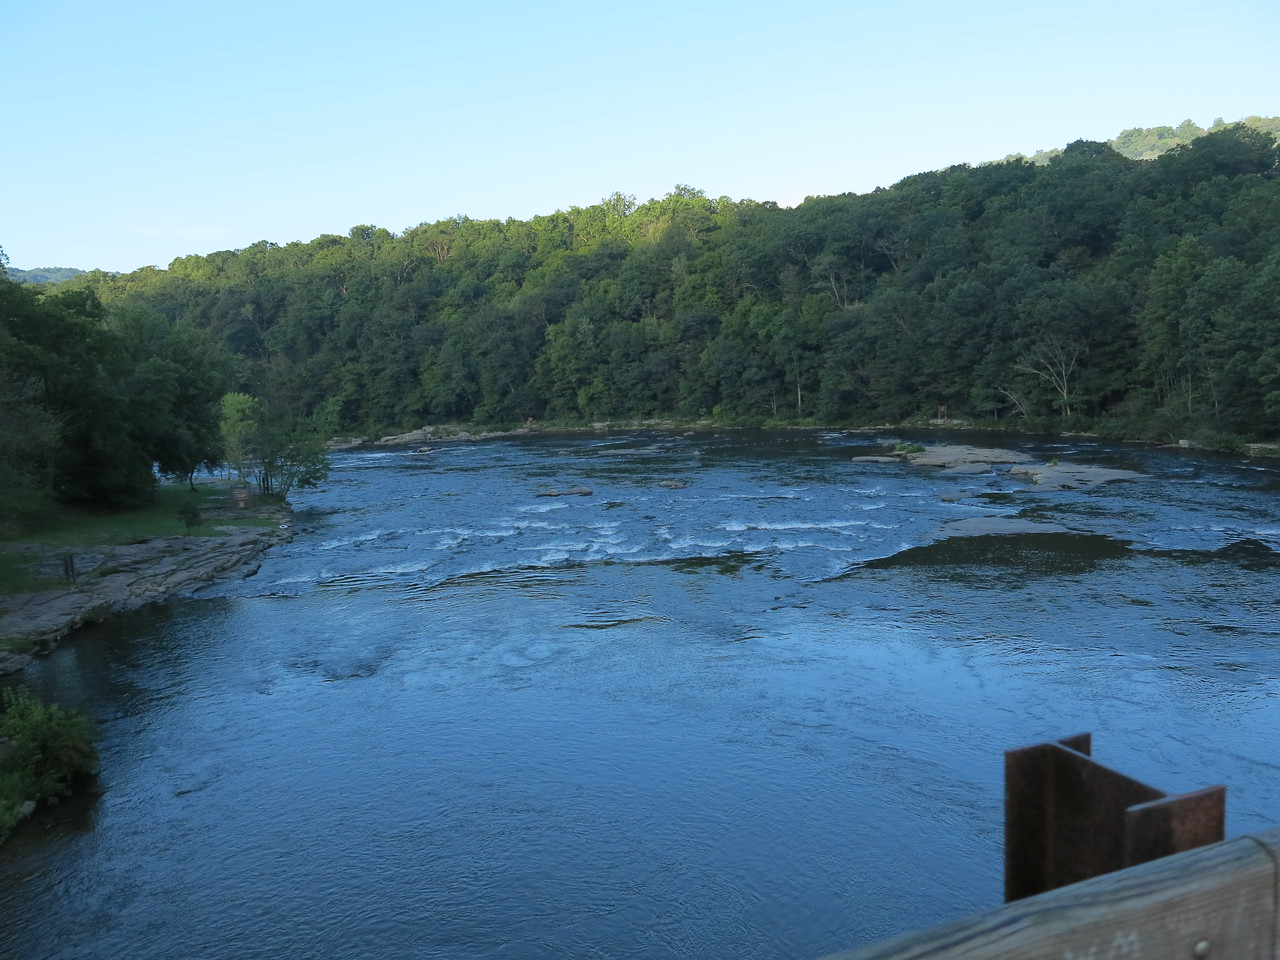 Still another downstream view